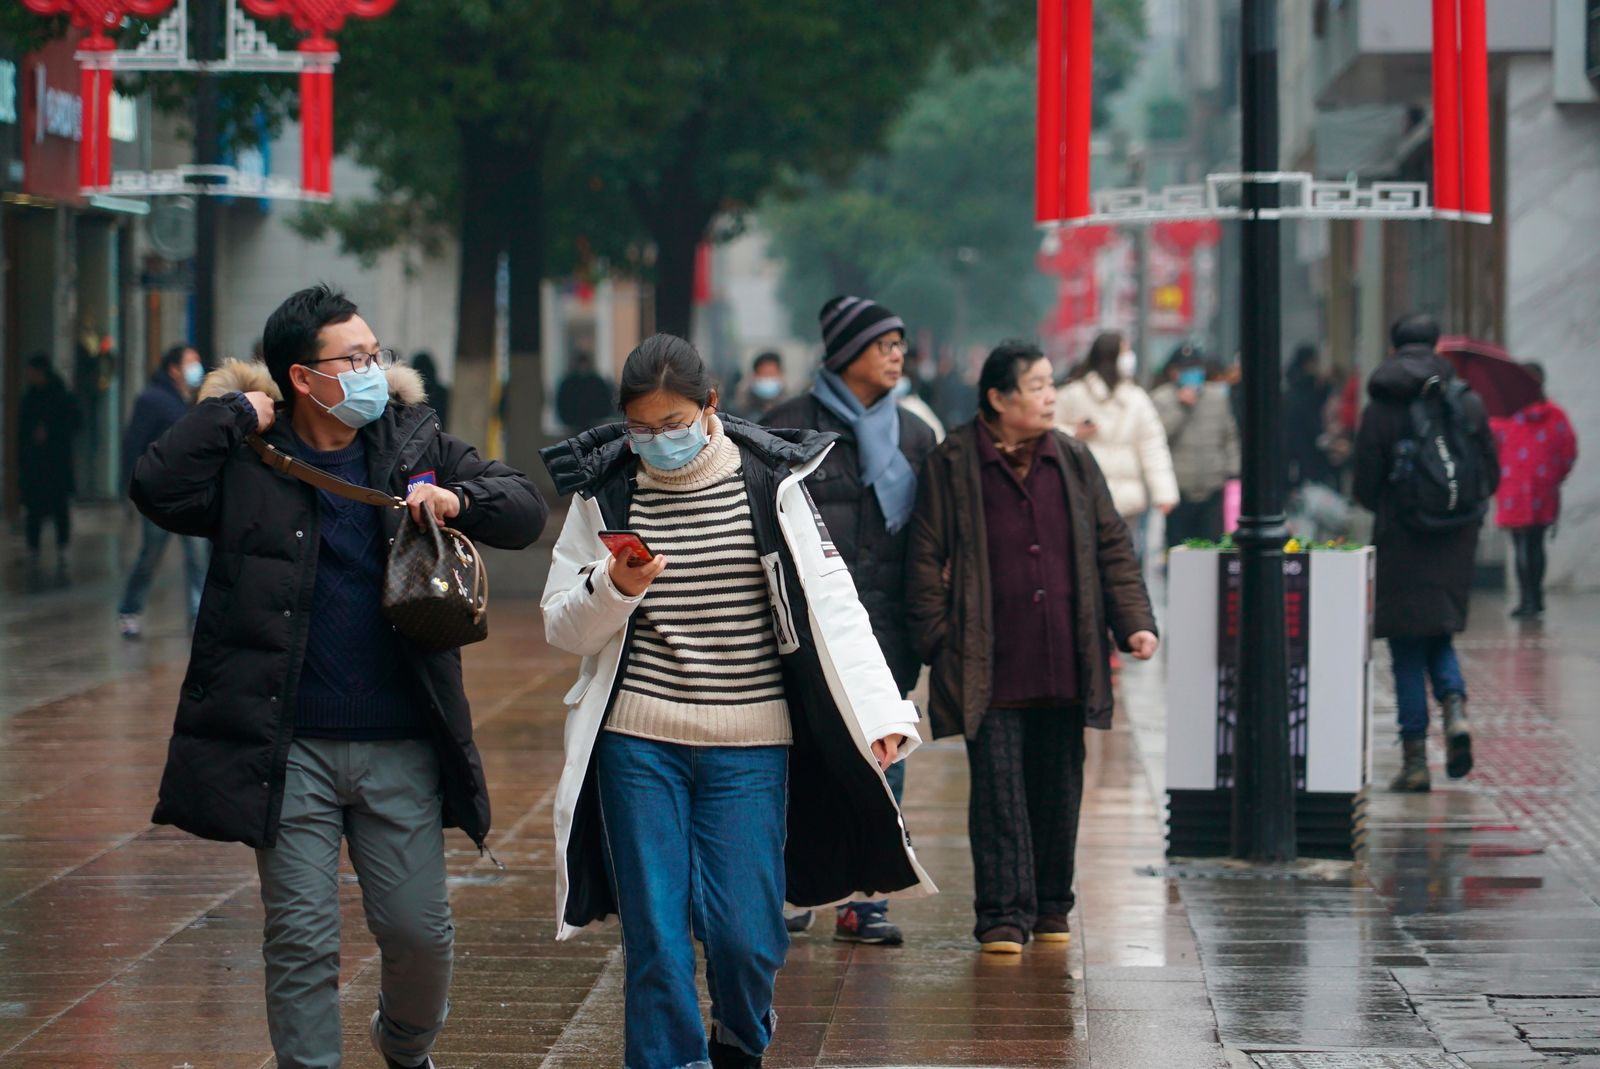 Masked pedestrians walk down a shopping street in downtown Wuhan, China, Wednesday,  Jan. 22, 2020. The number of cases of a new coronavirus from Wuhan has risen over 400 in China and the death toll to 9, Chinese health authorities said Wednesday. (AP Photo/Dake Kang)